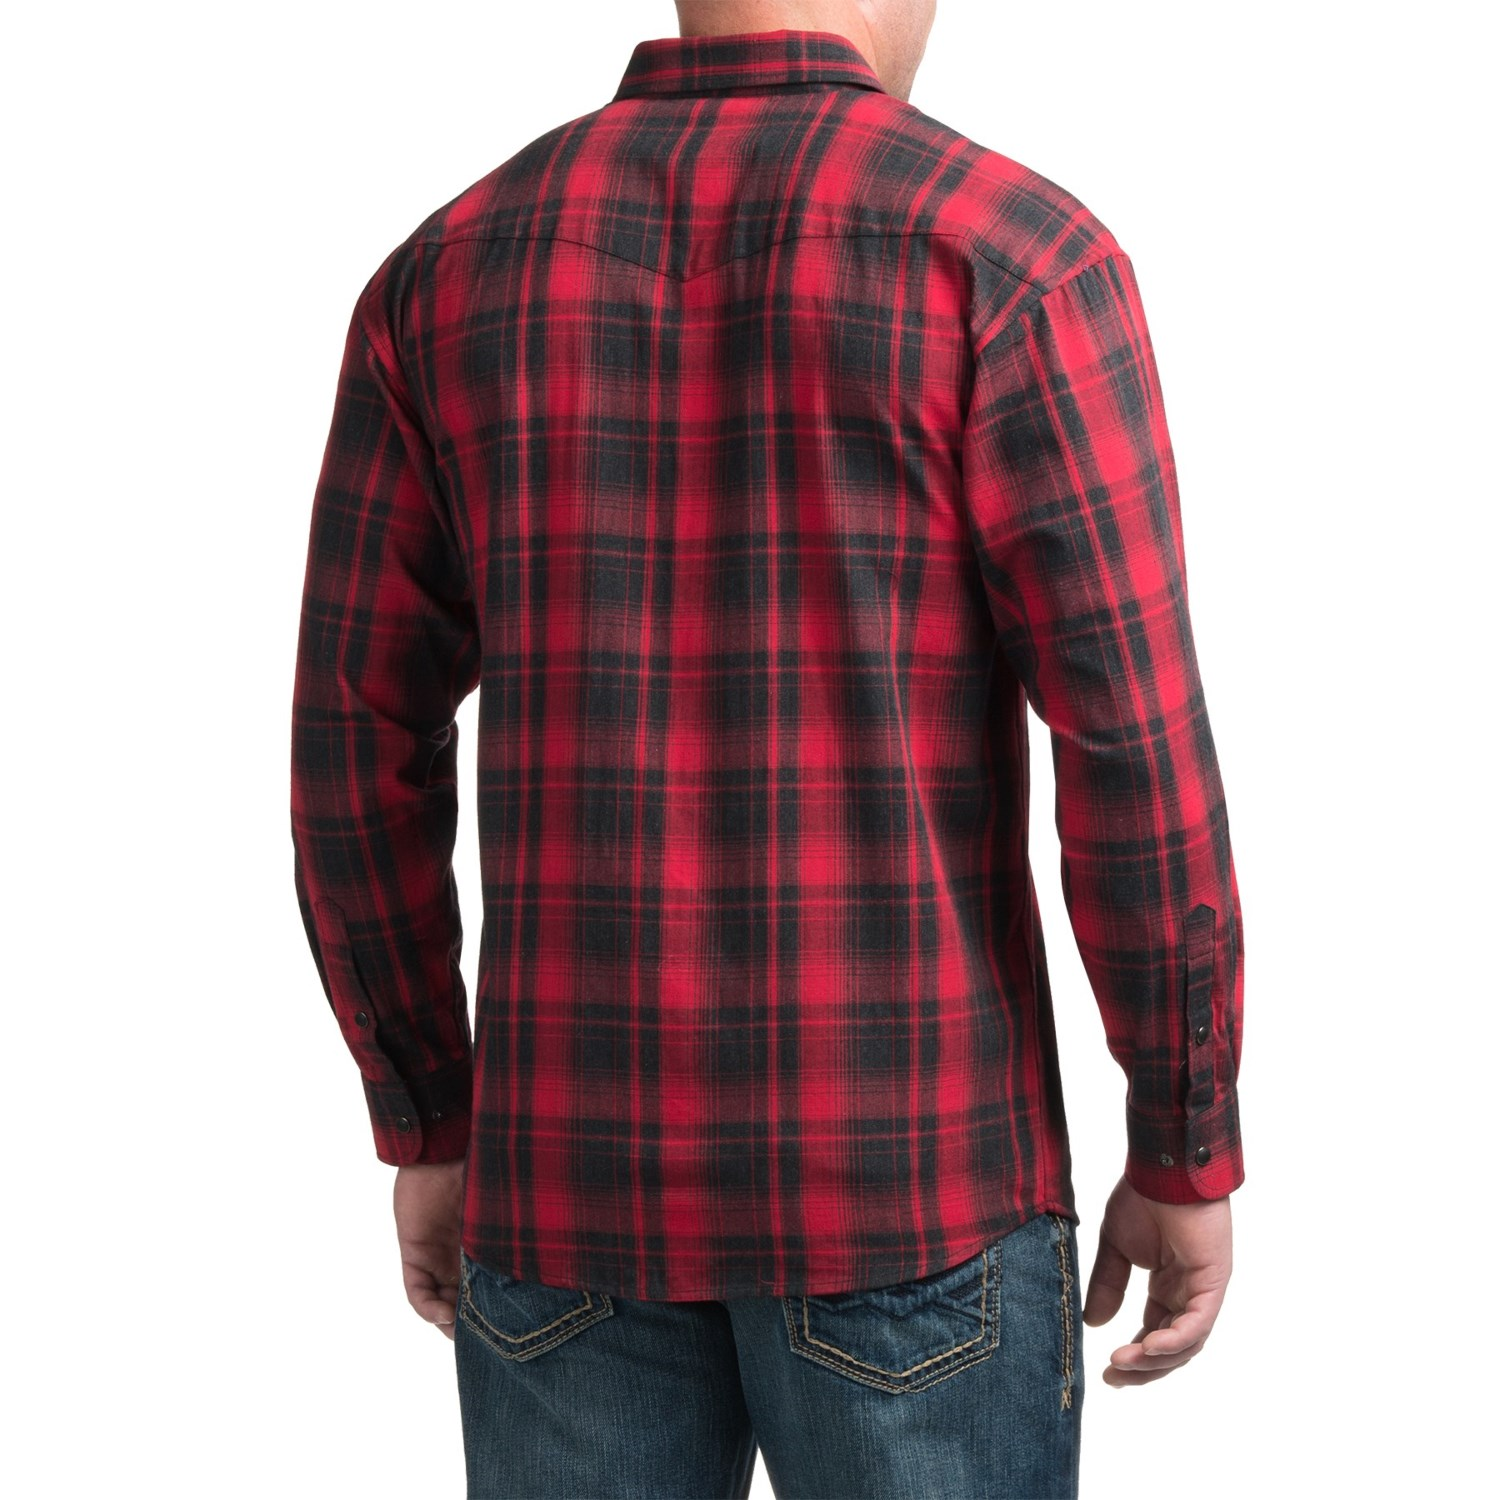 Powder river outfitters bandera plaid shirt for men for Plaid shirt long sleeve